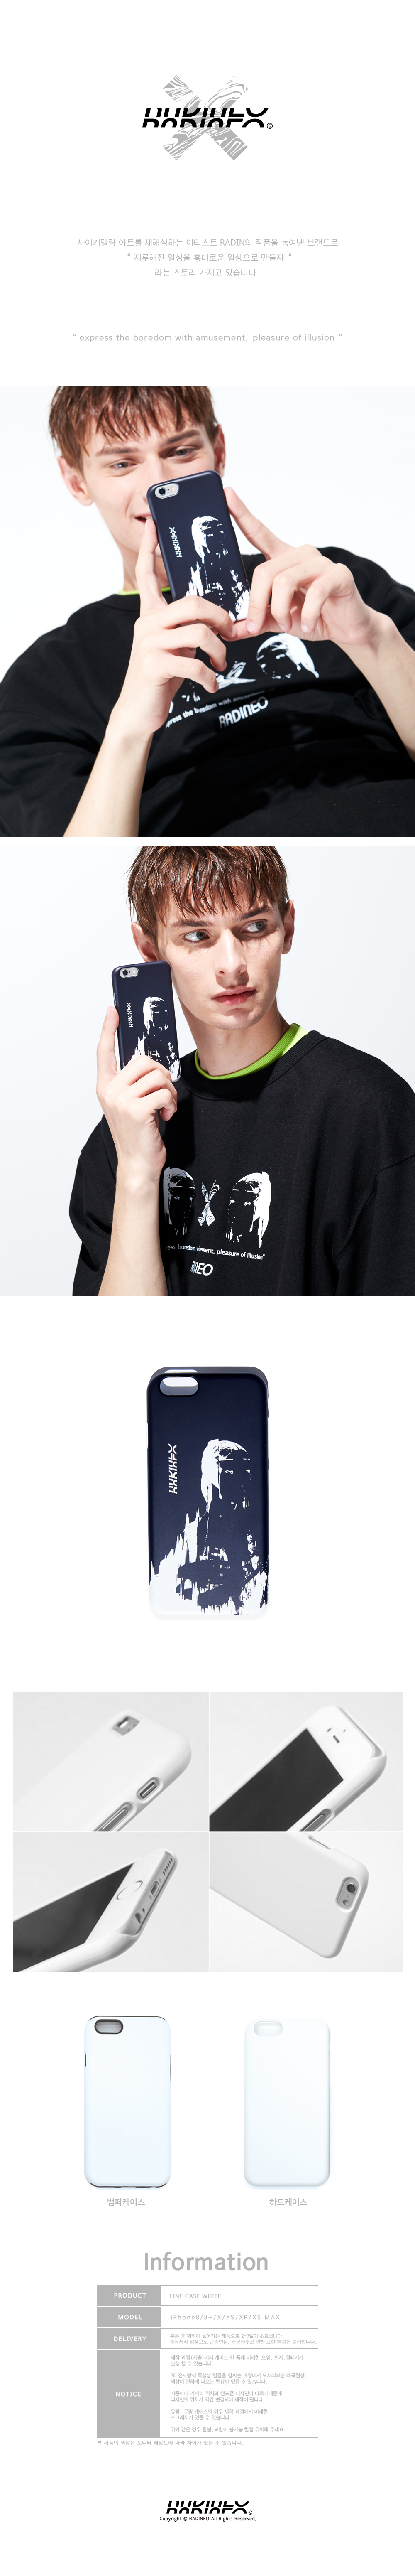 라디네오(RADINEO) LINE CASE WHITER011